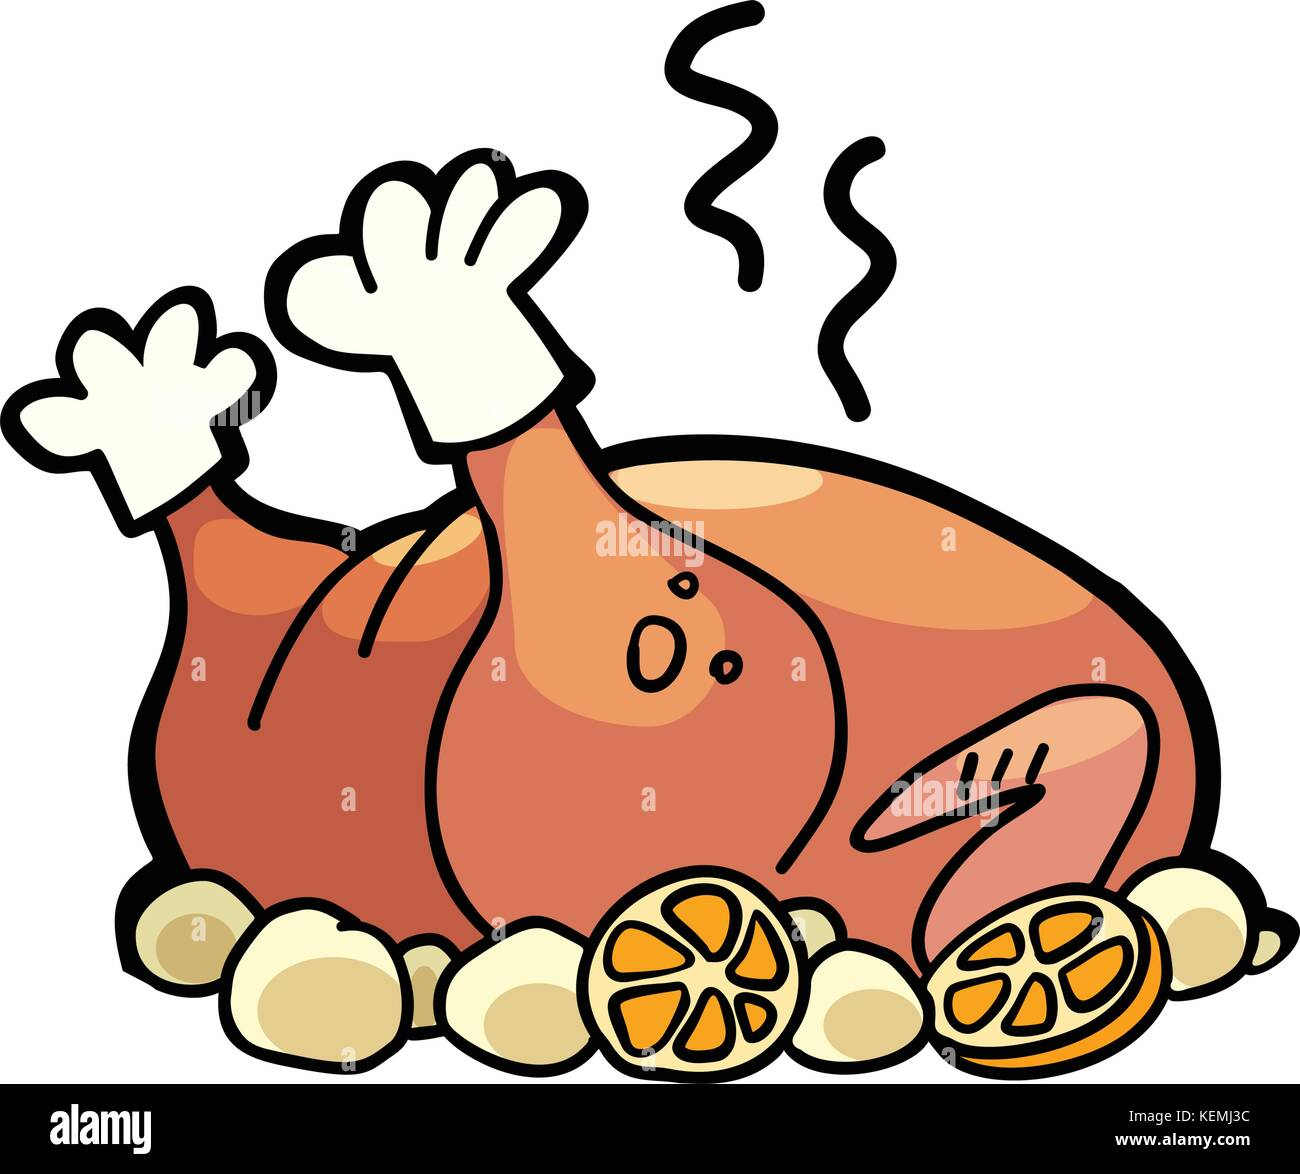 Baked poultry, chicken Turkey or goose - Stock Vector